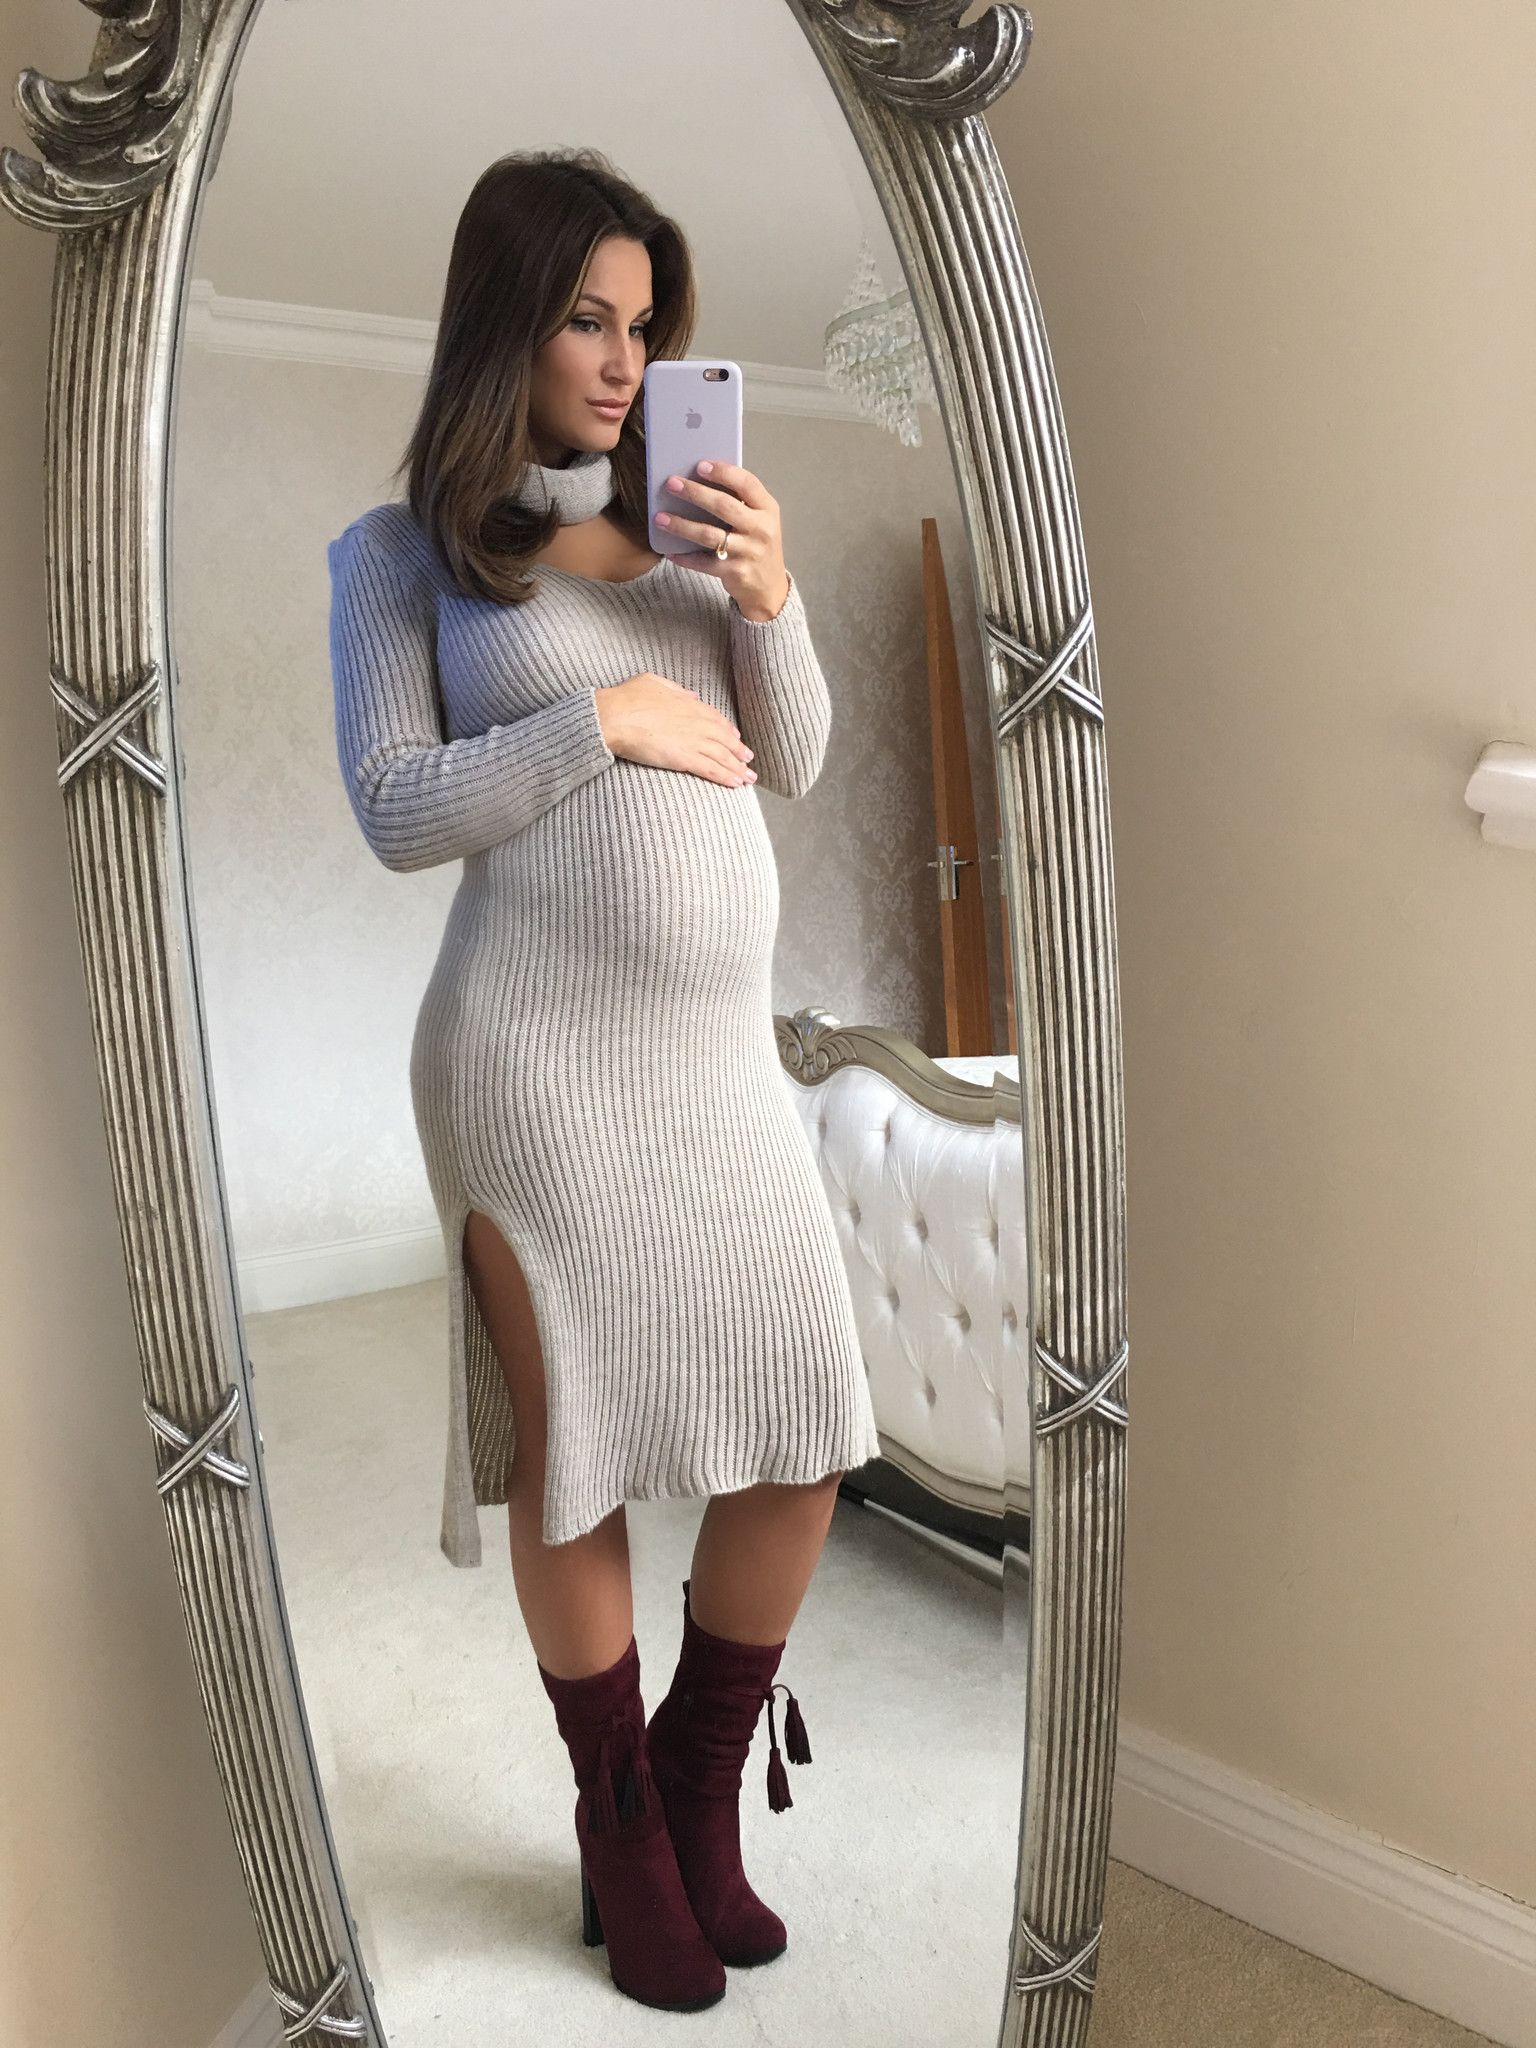 392d72aebbd1c Pregnant Sam Faiers shows off her neat baby bump as she coordinates with  sister Billie in chic jumper dress and suede boots | Daily Mail Online